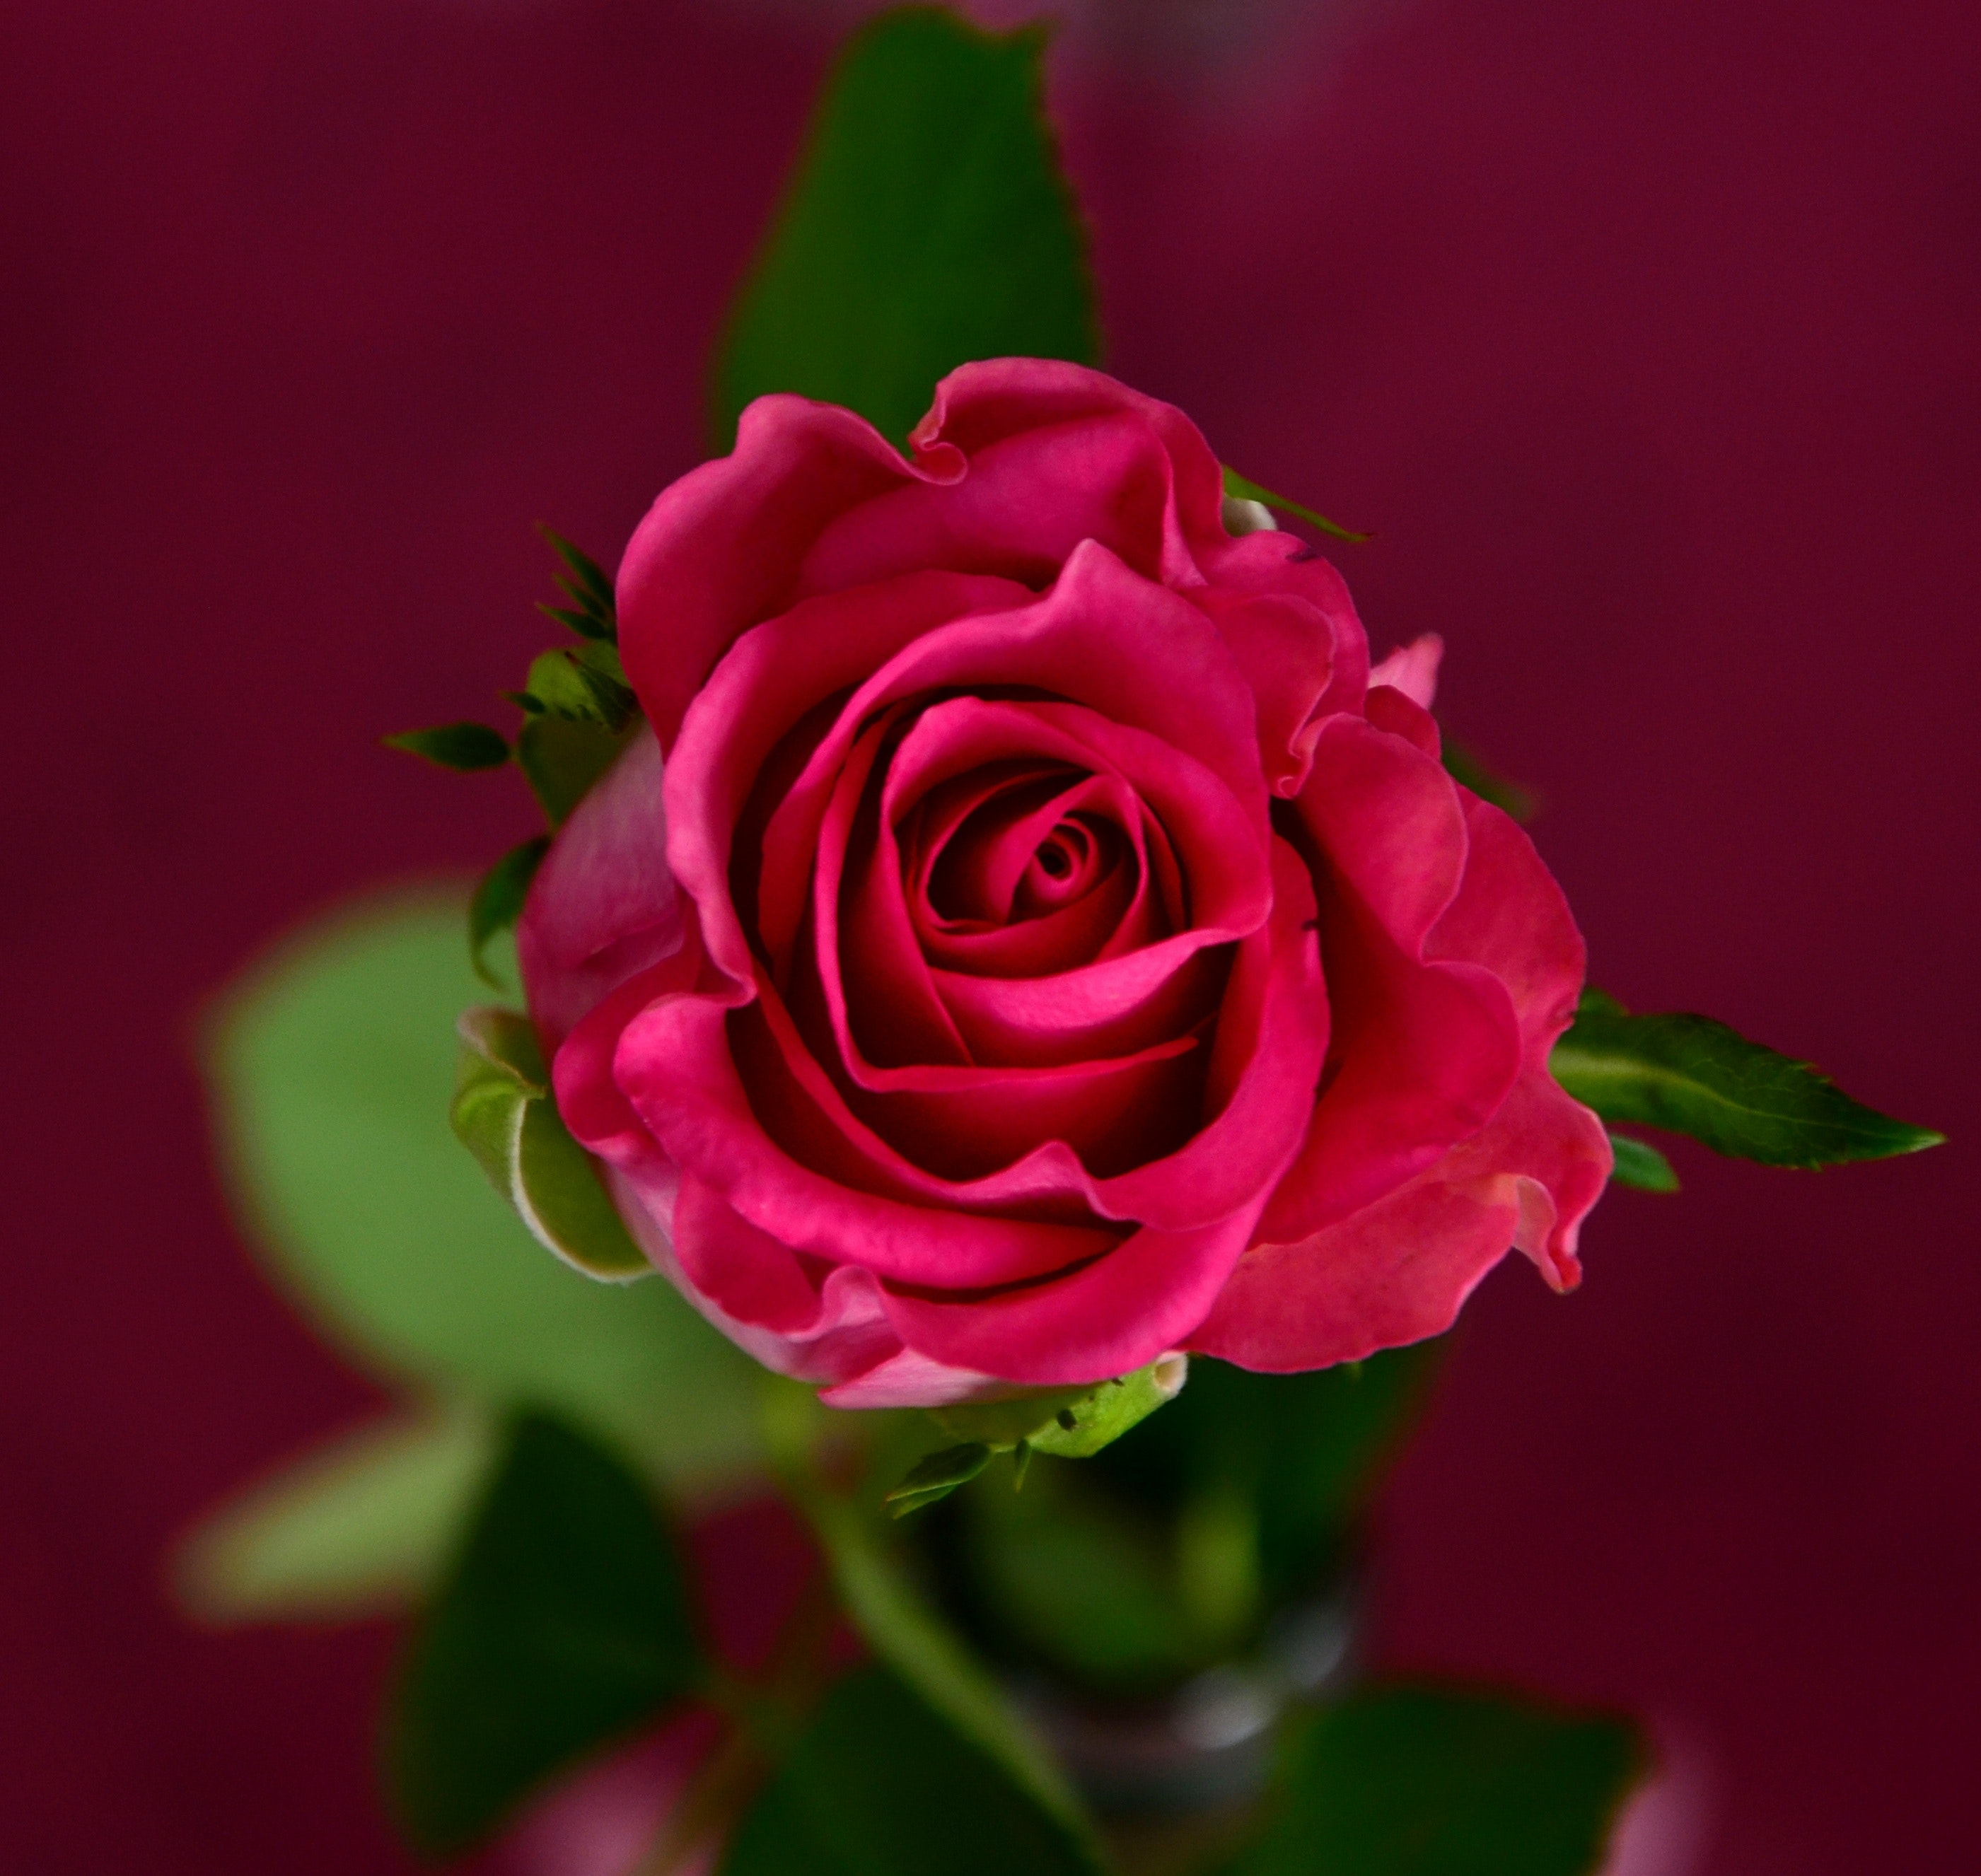 Flower rose image